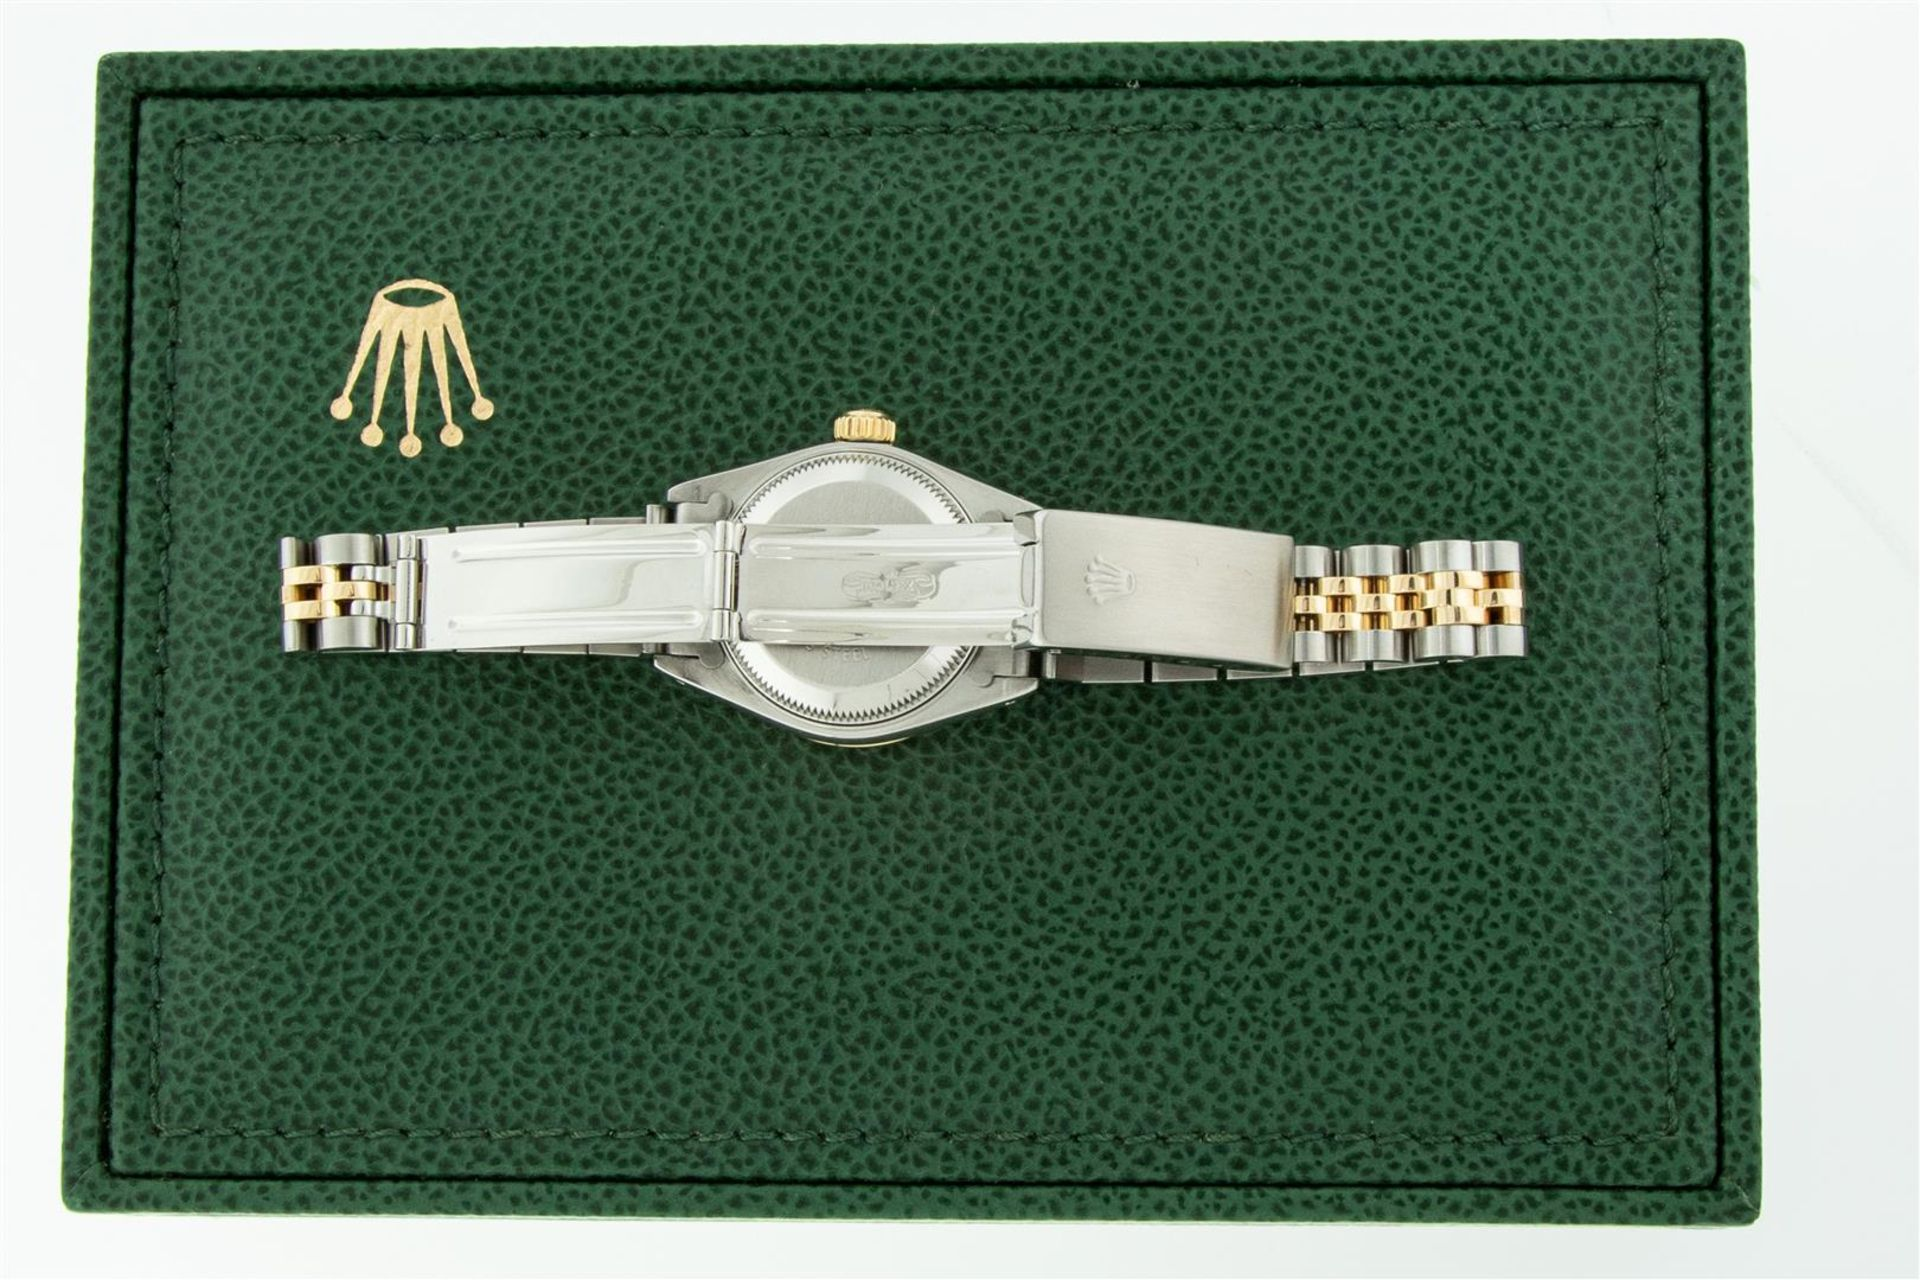 Rolex Ladies 2 Tone Silver Diamond & Ruby Oyster Perpetual Datejust Wristwatch - Image 9 of 9